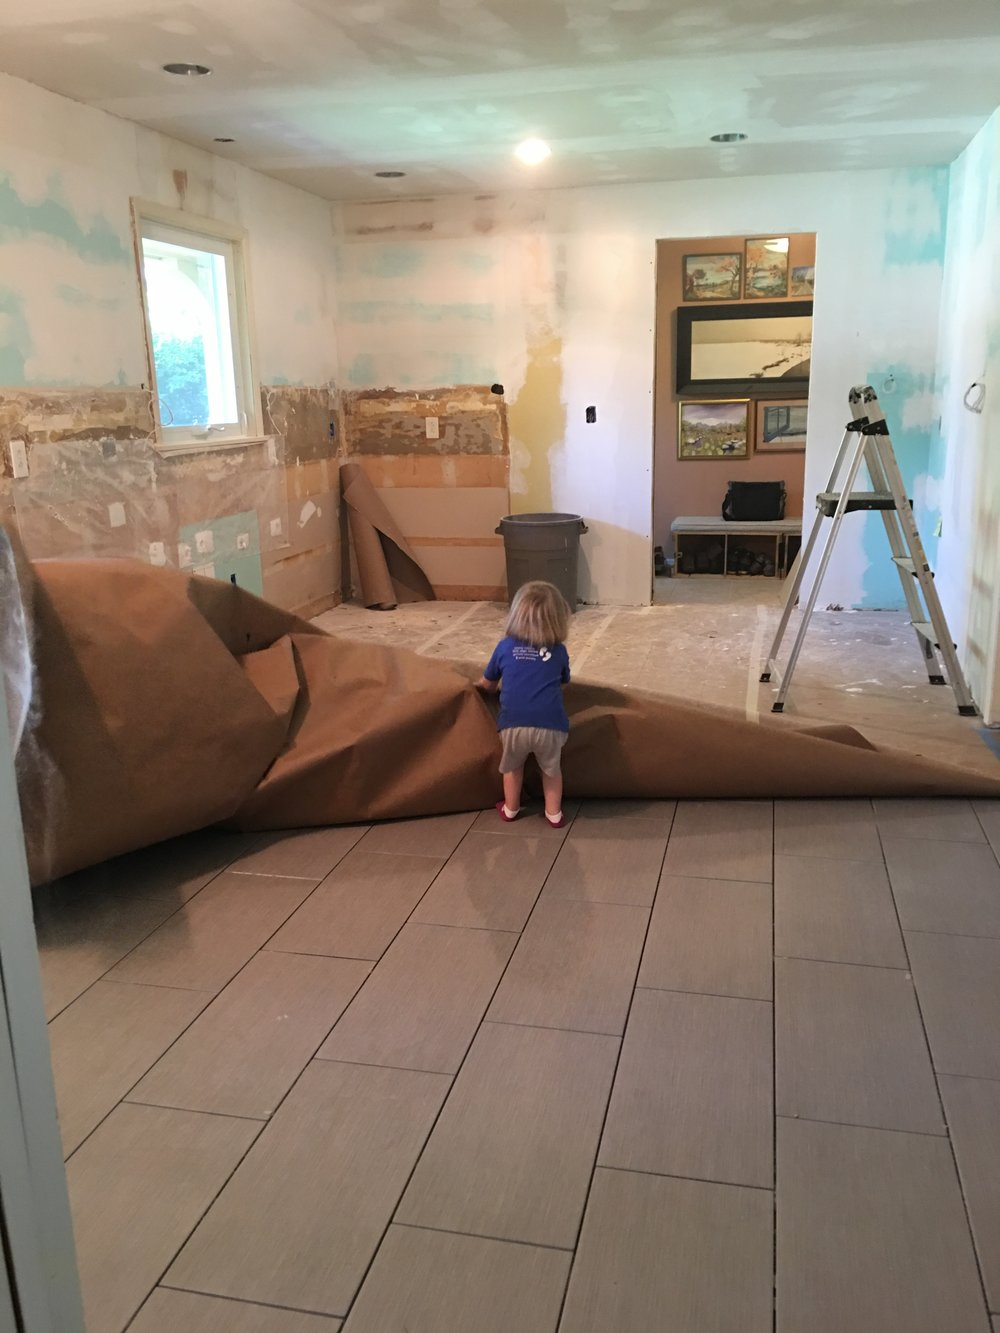 Here's little Caroline revealing the new floor my brother installed. What a good day that was!